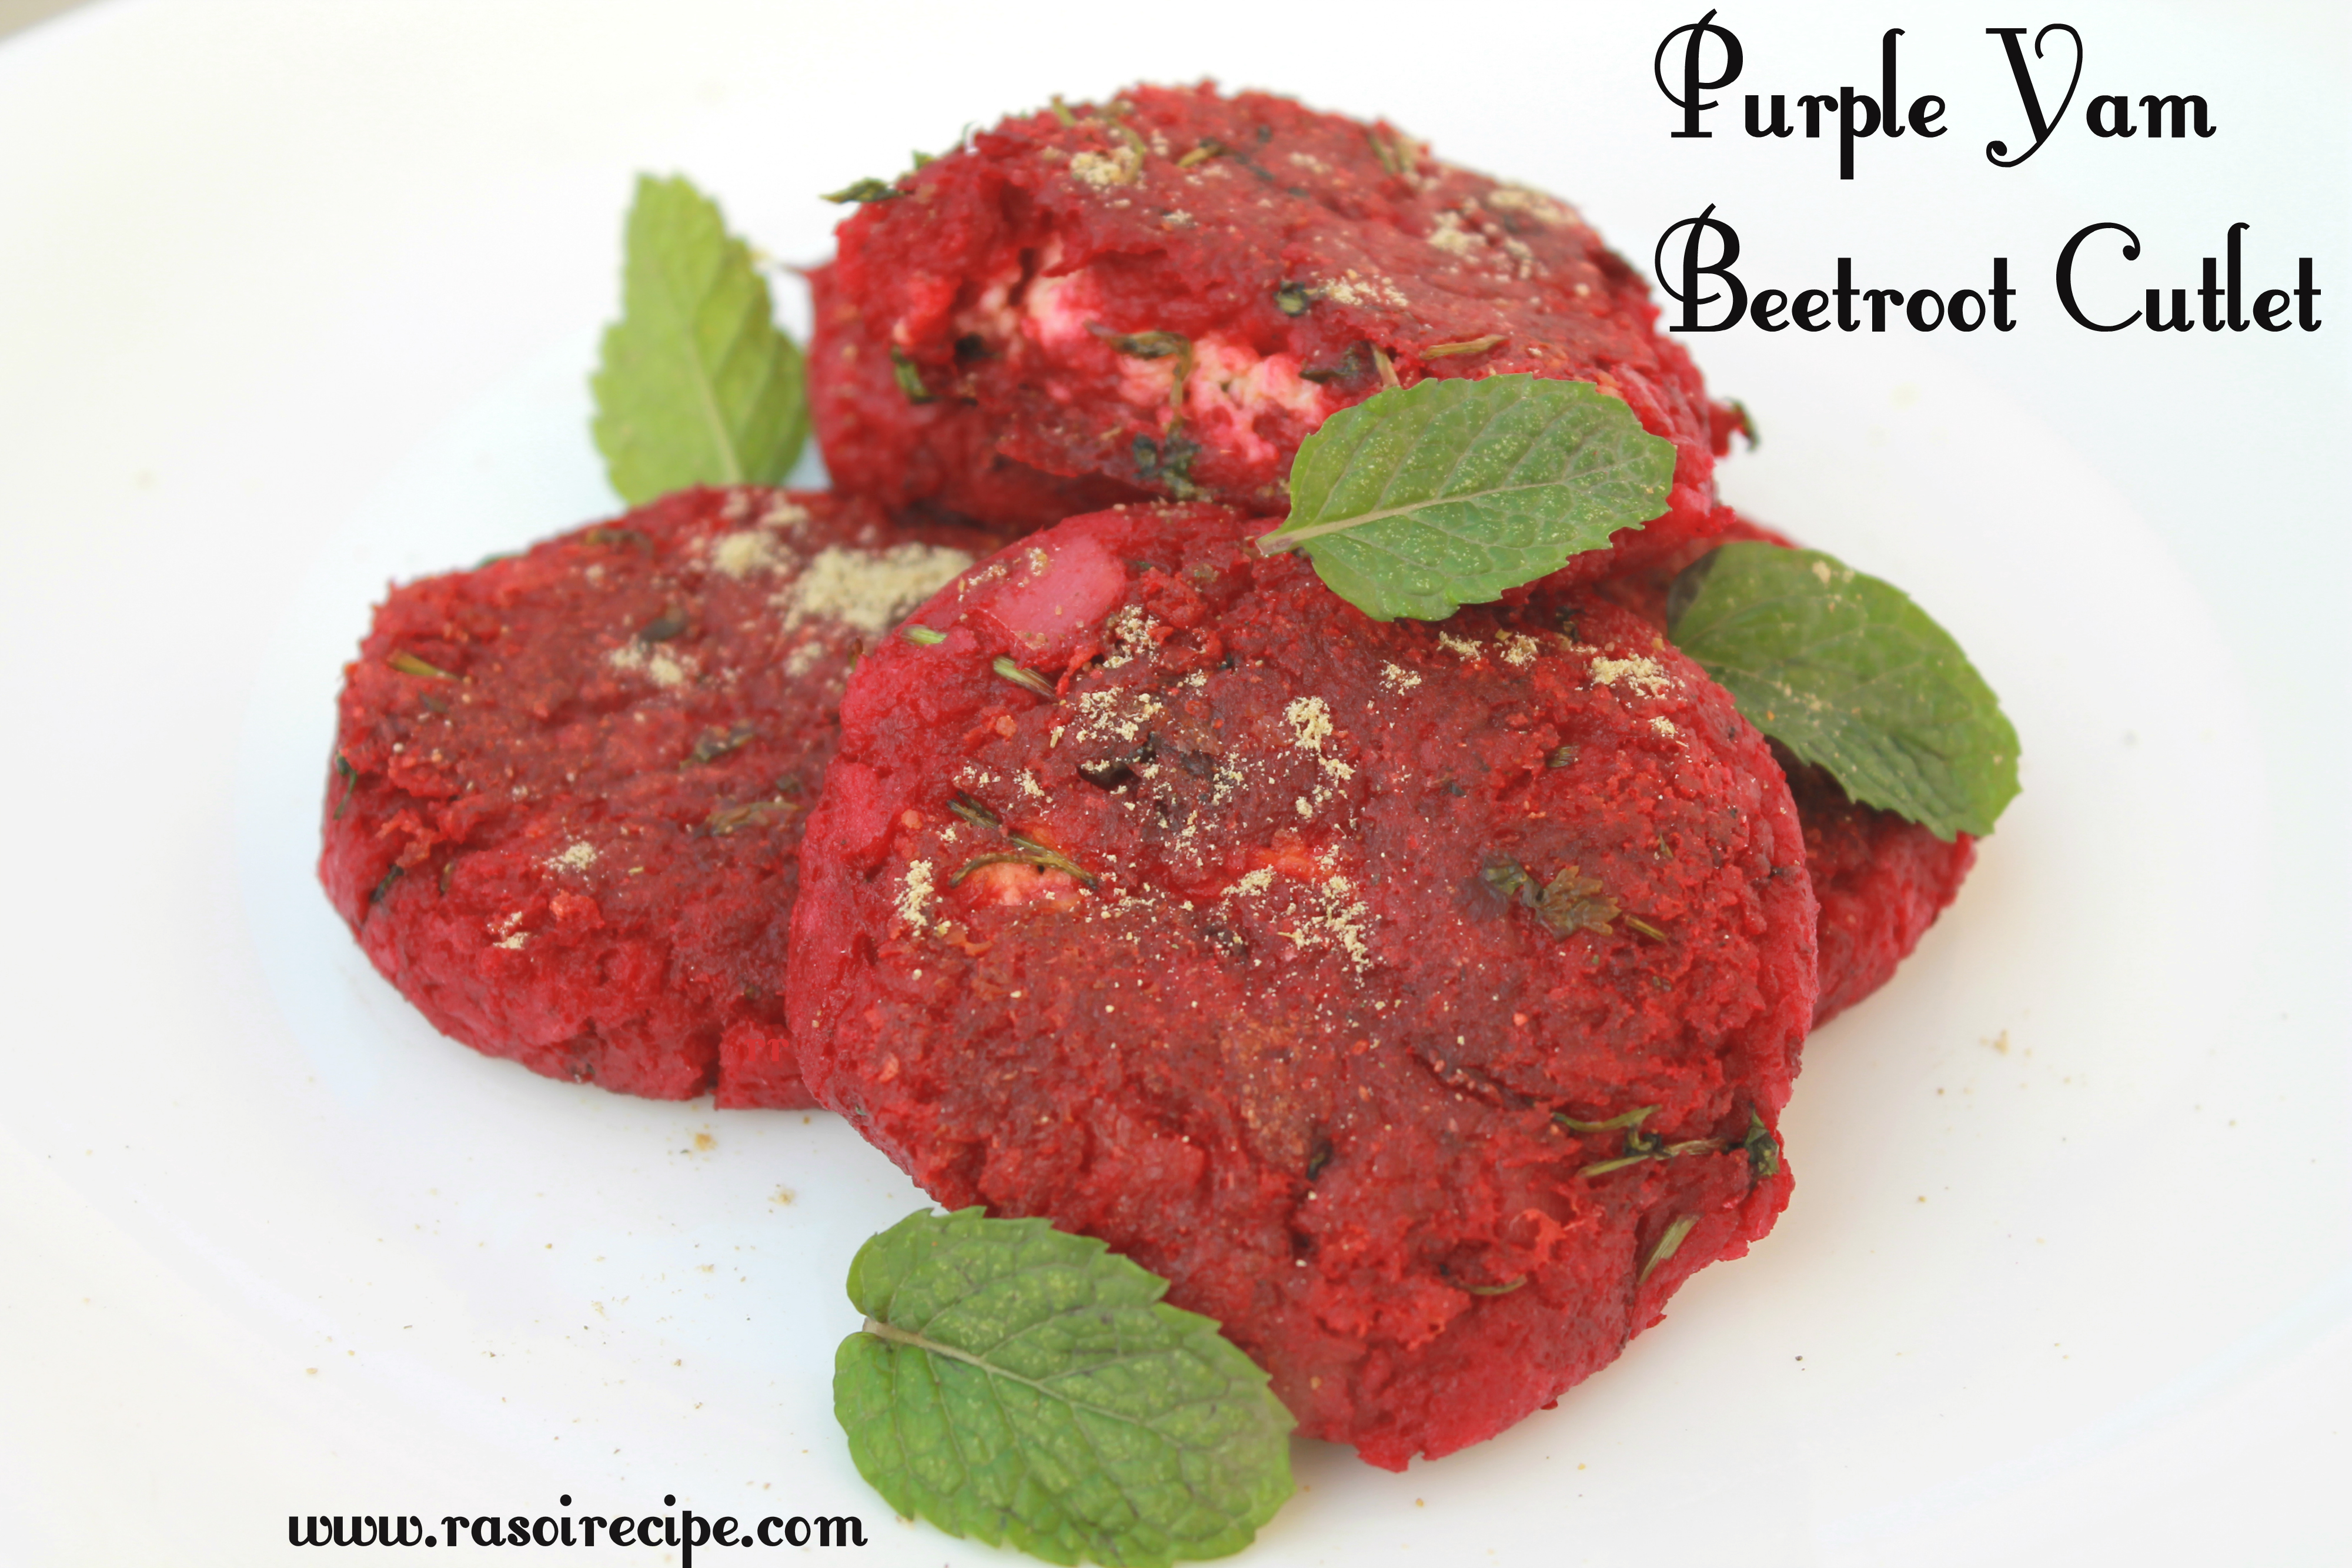 Purple Yam Beetroot Cutlet